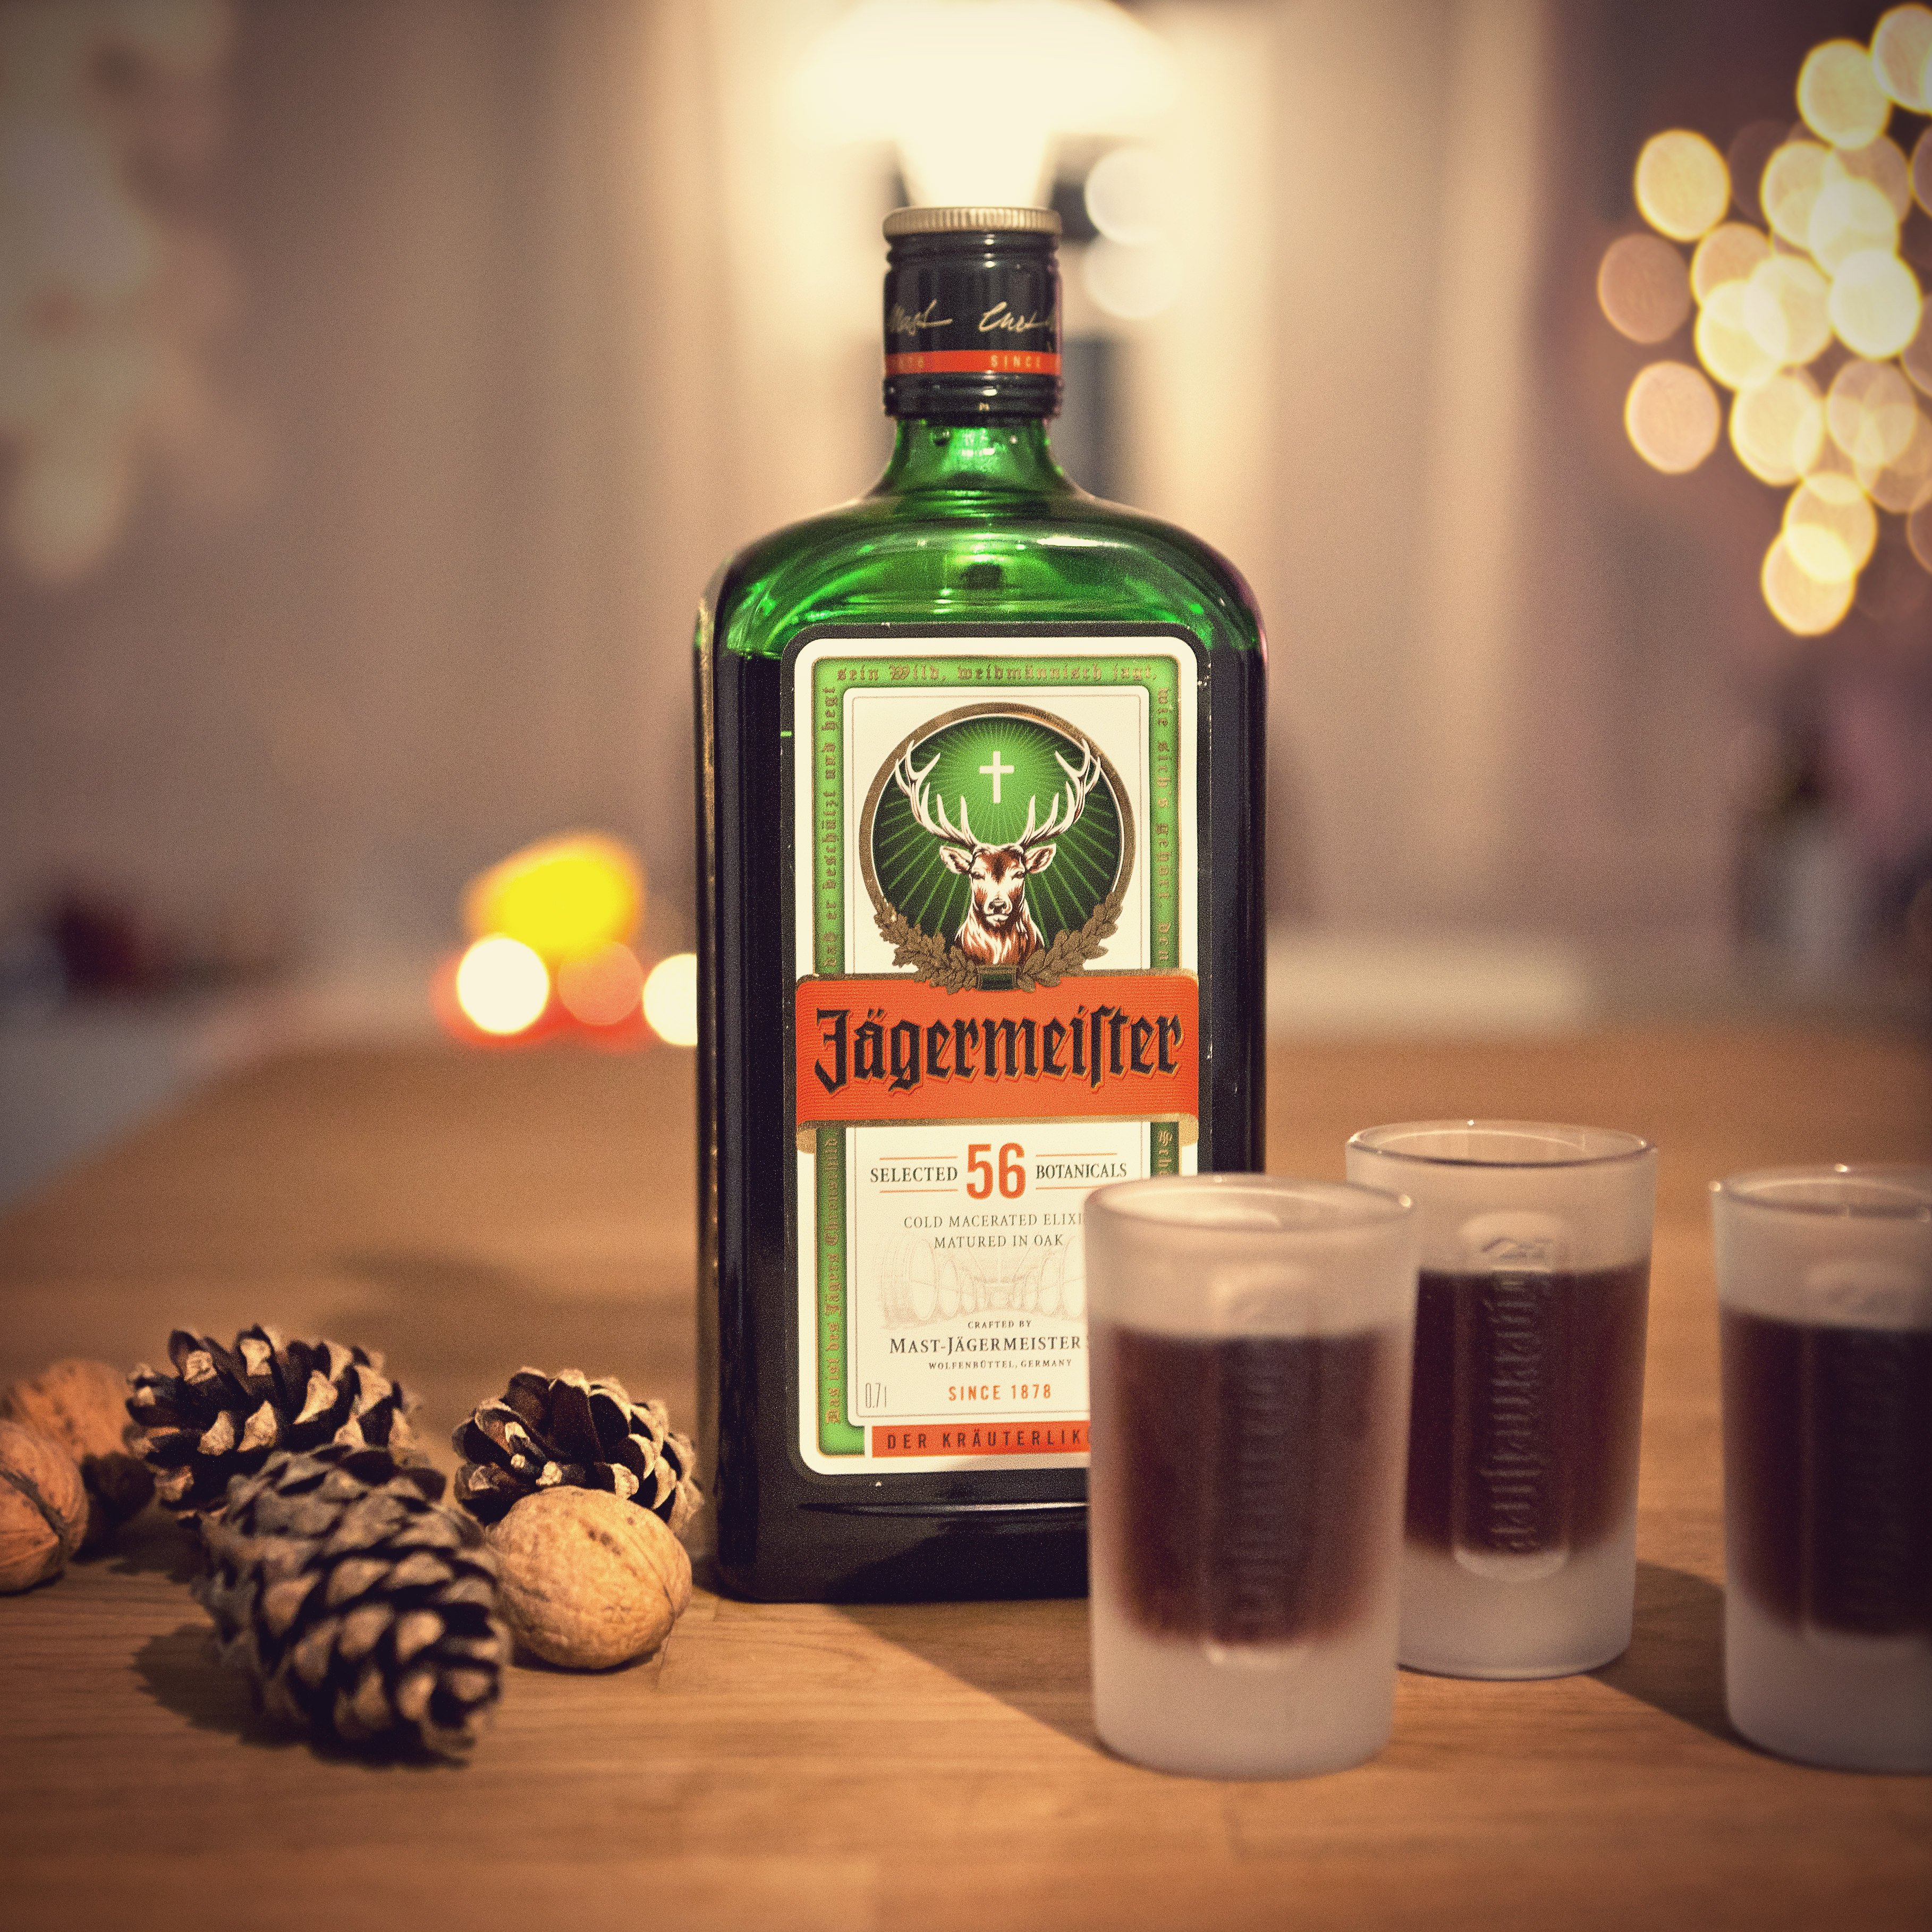 jagermeister-nouvelle-bouteille-02